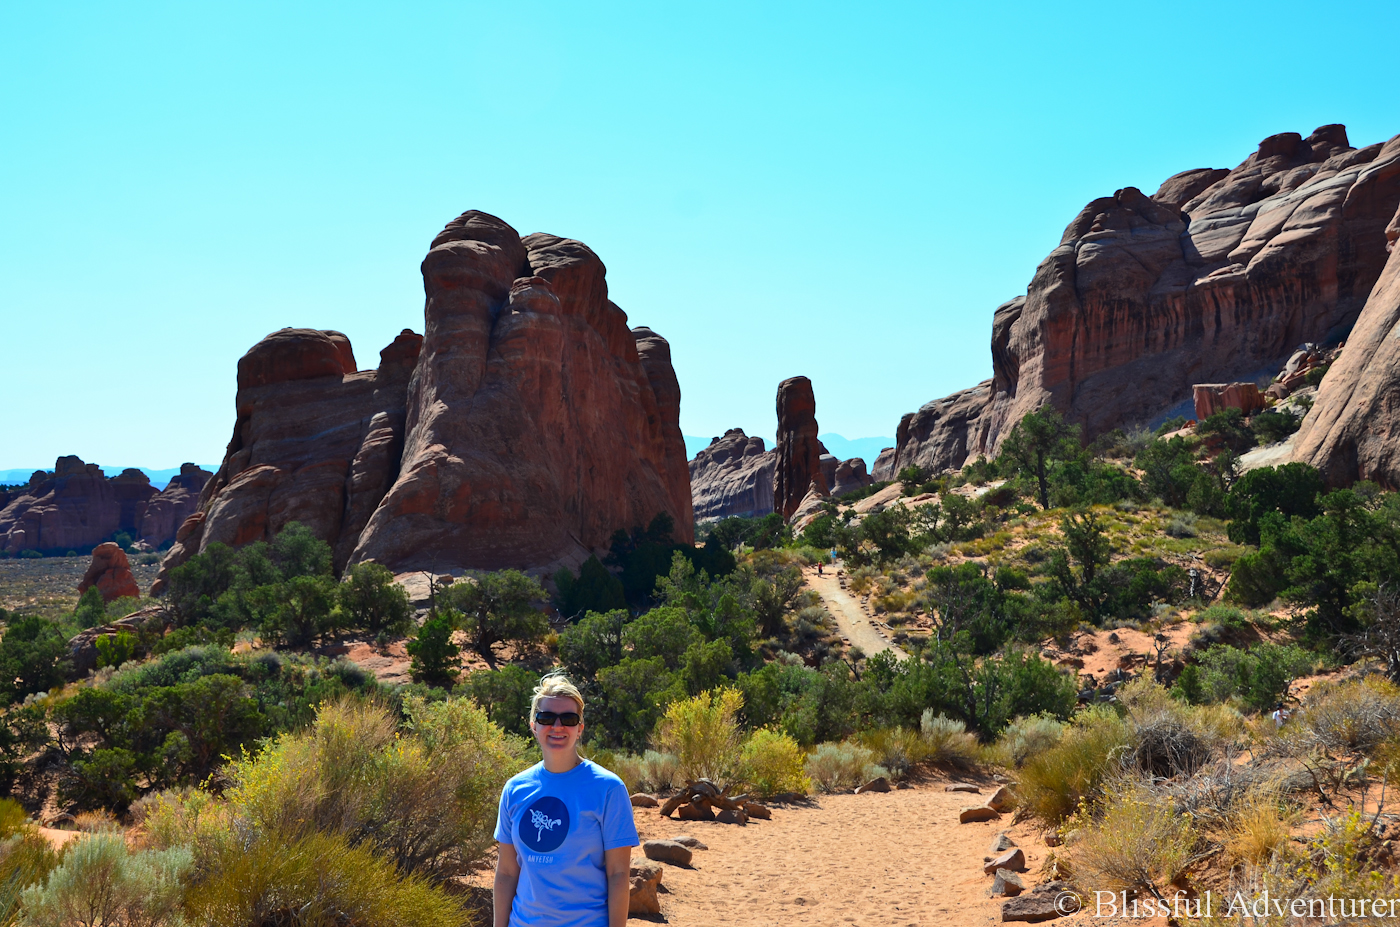 Arches National Park - The Blissful Adventurer